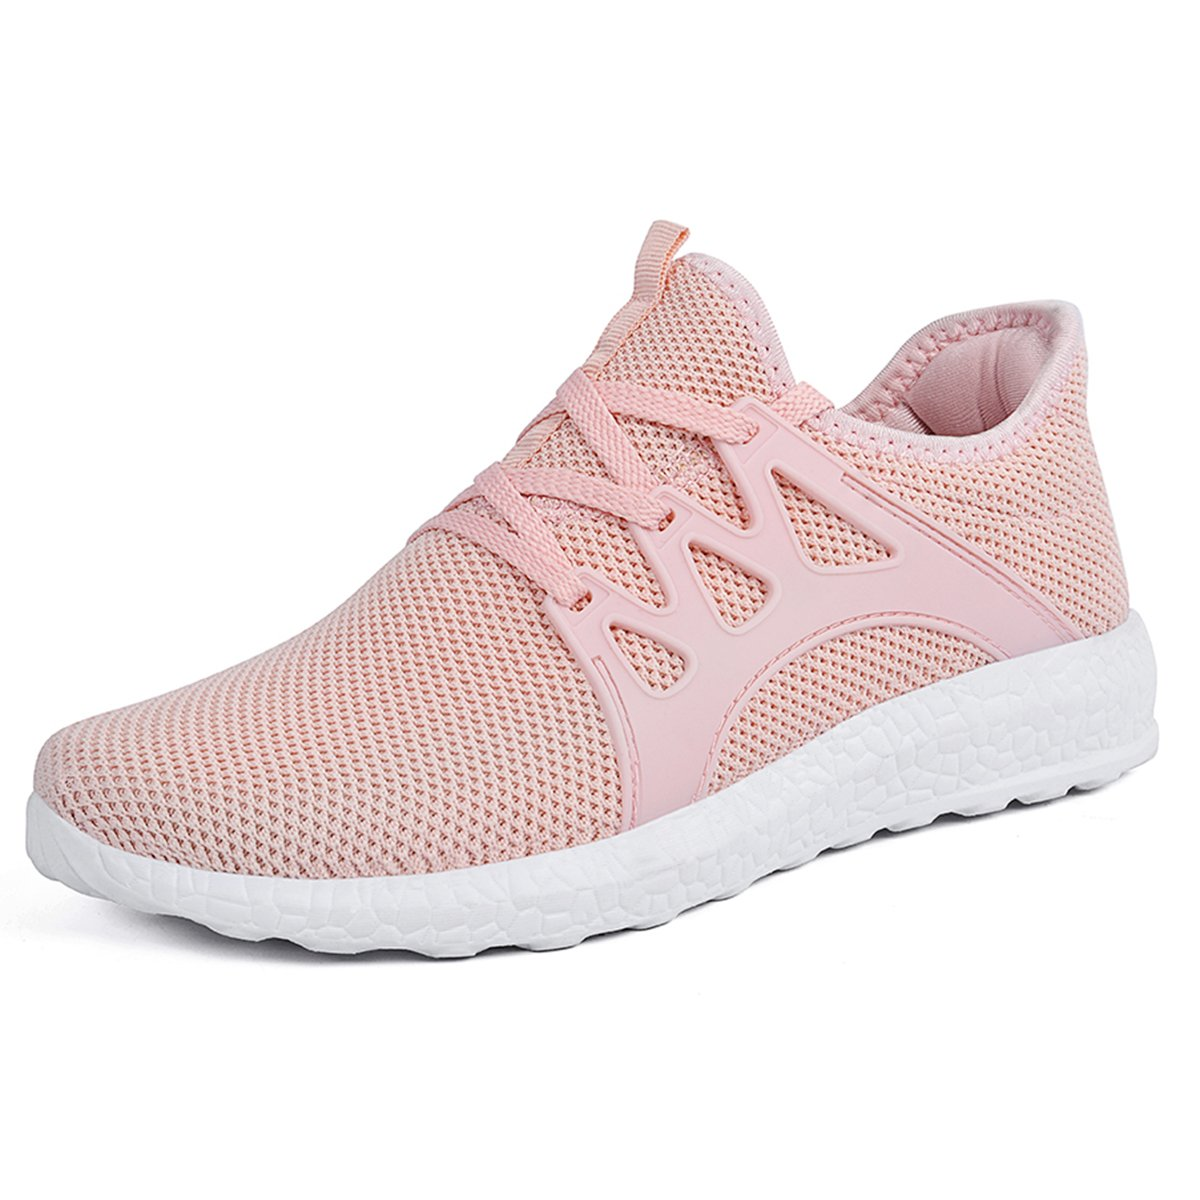 Allpink Mxson Women's Ultra Lightweight Breathable Mesh Street Sport Walking shoes Casual Sneakers